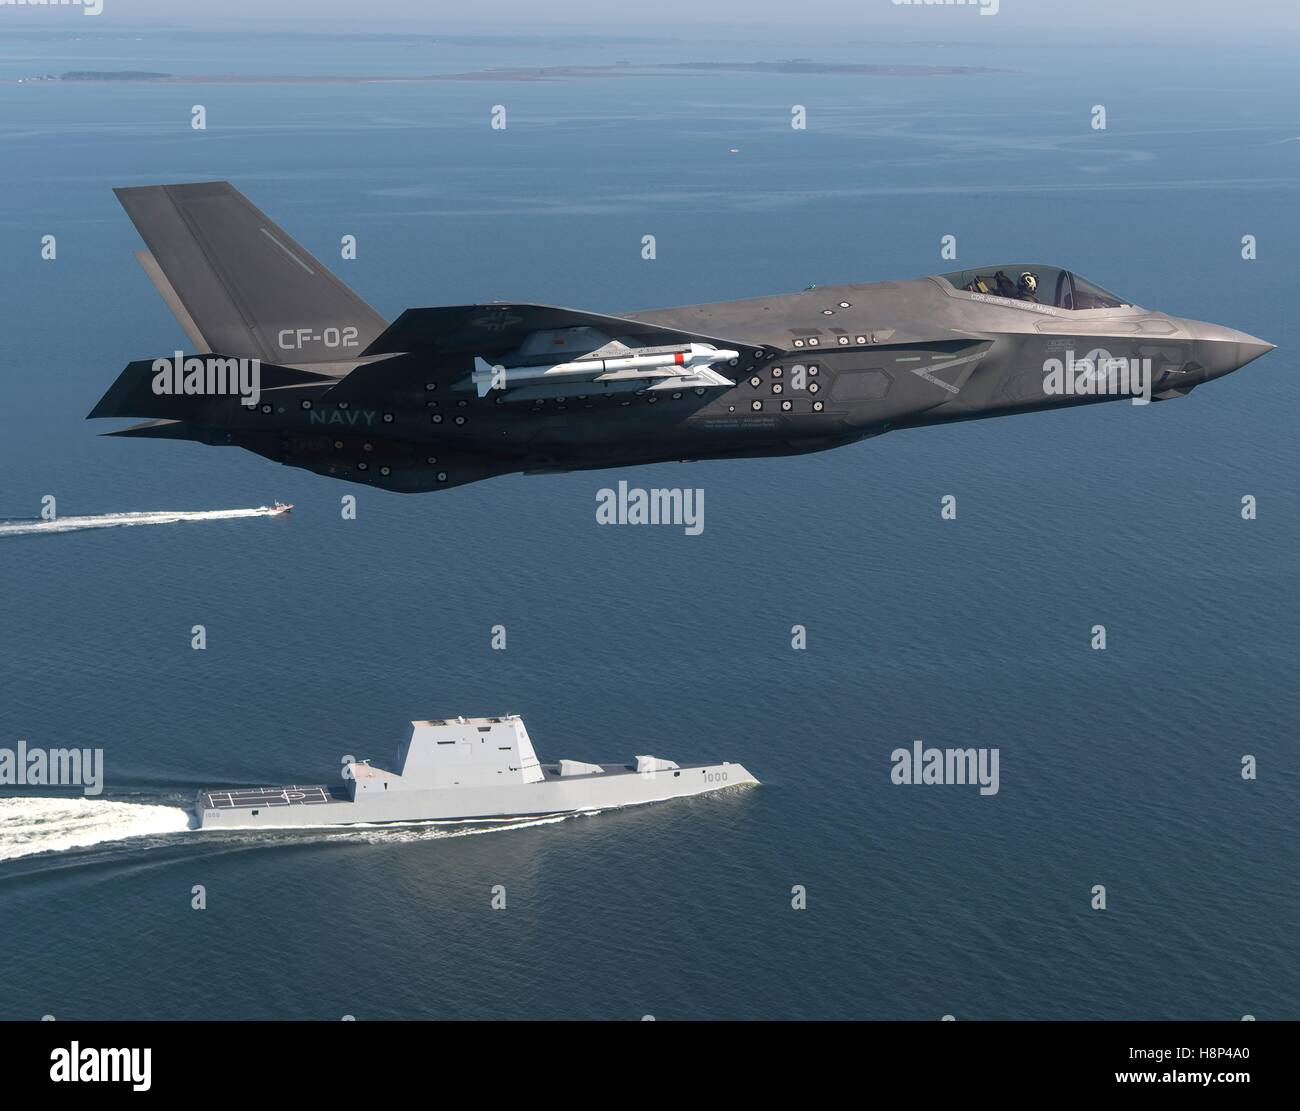 A F-35 Lightning II stealth multirole fighter aircraft flies over the USN Zumwalt-class guided-missile destroyer - Stock Image